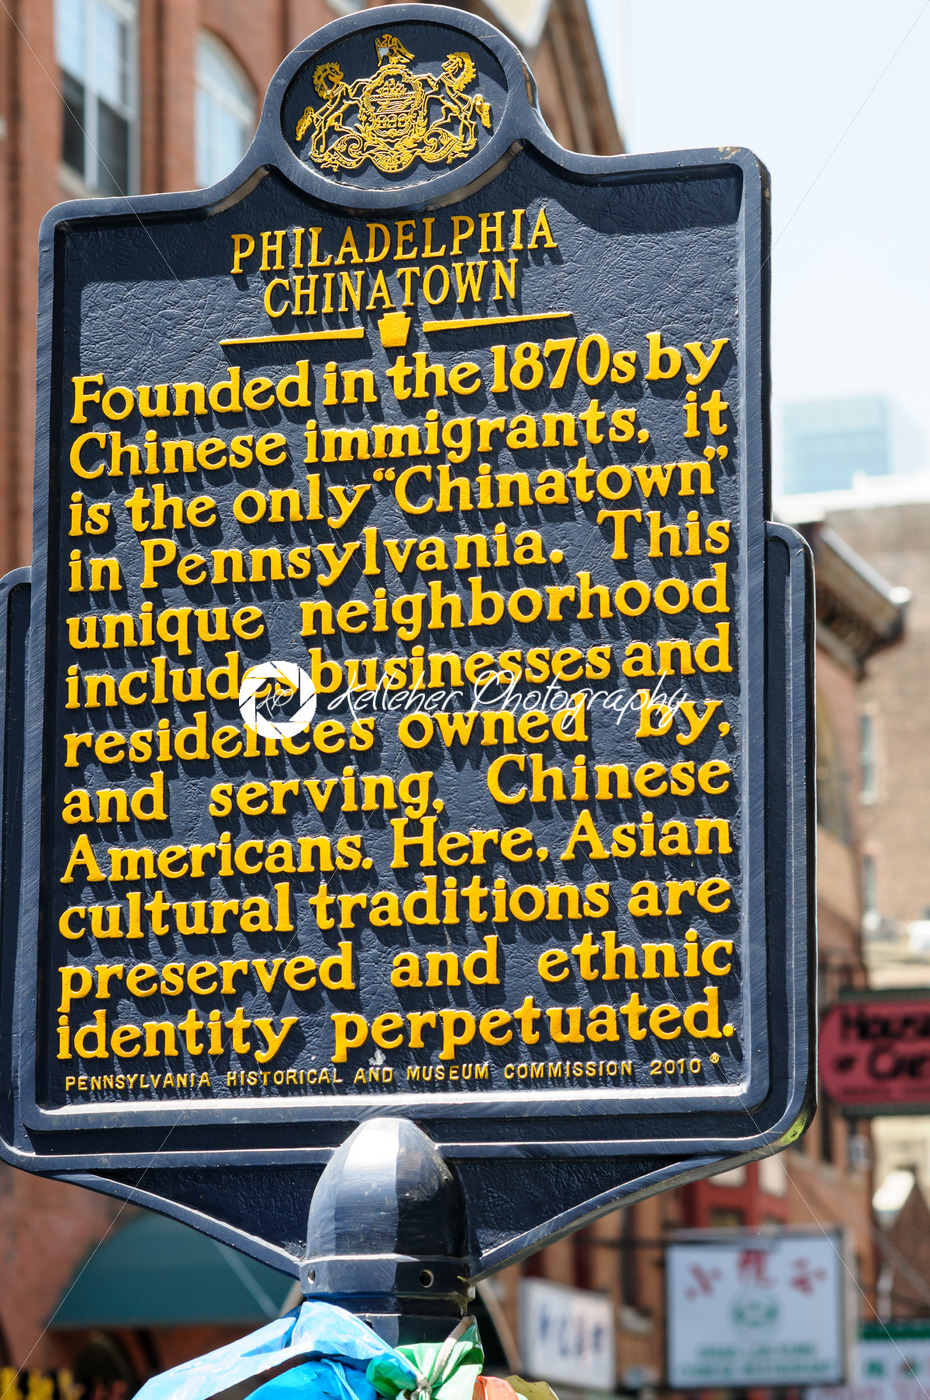 PHILADELPHIA, PA – MAY 14: Sign indicating the Chinatown section of downtown Philadelphia on May 14, 2015 - Kelleher Photography Store